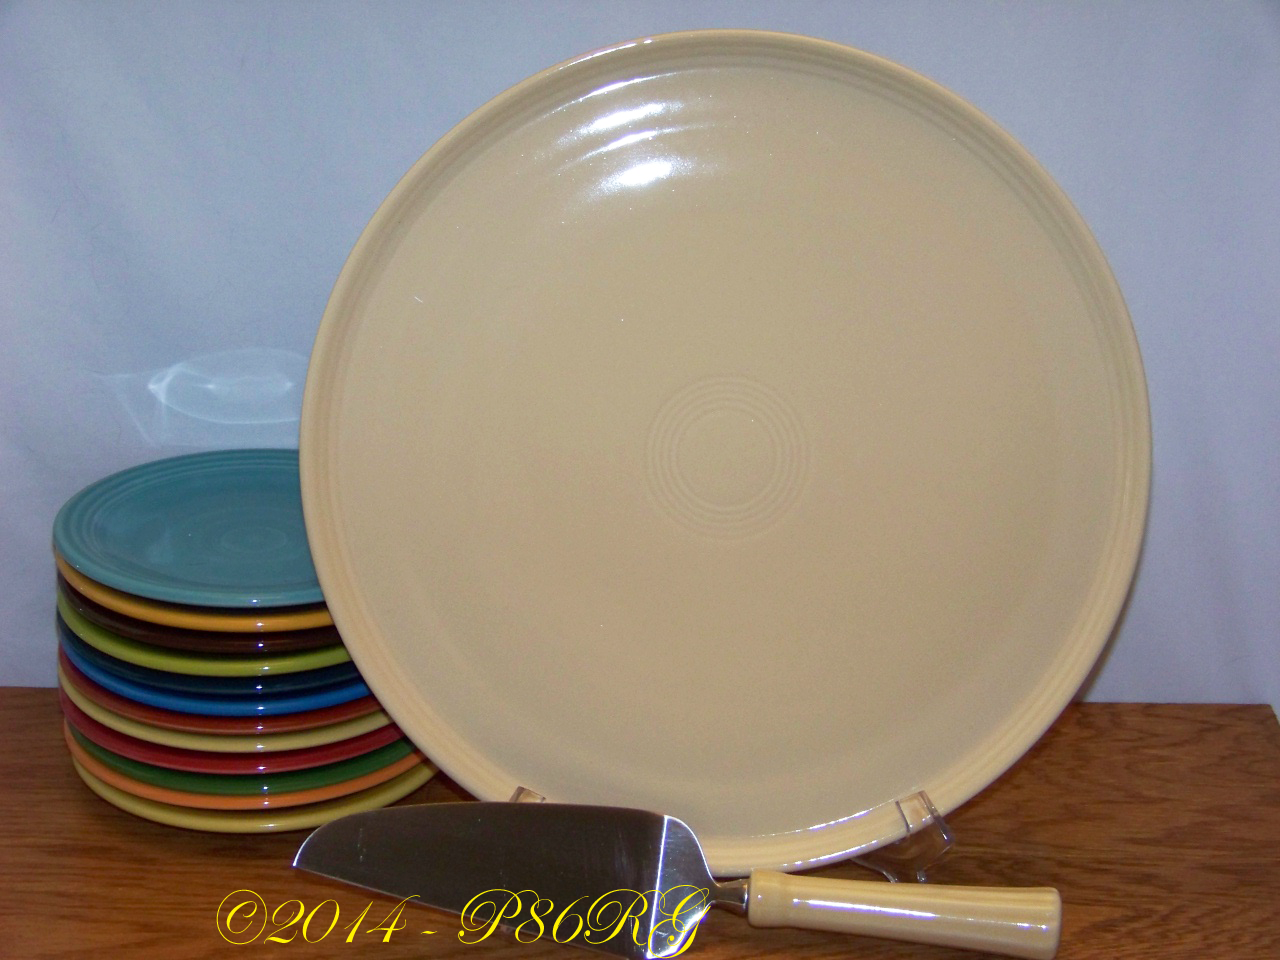 Fiesta® Cake Plate with Server in Ivory & Fiesta® Serving Pieces